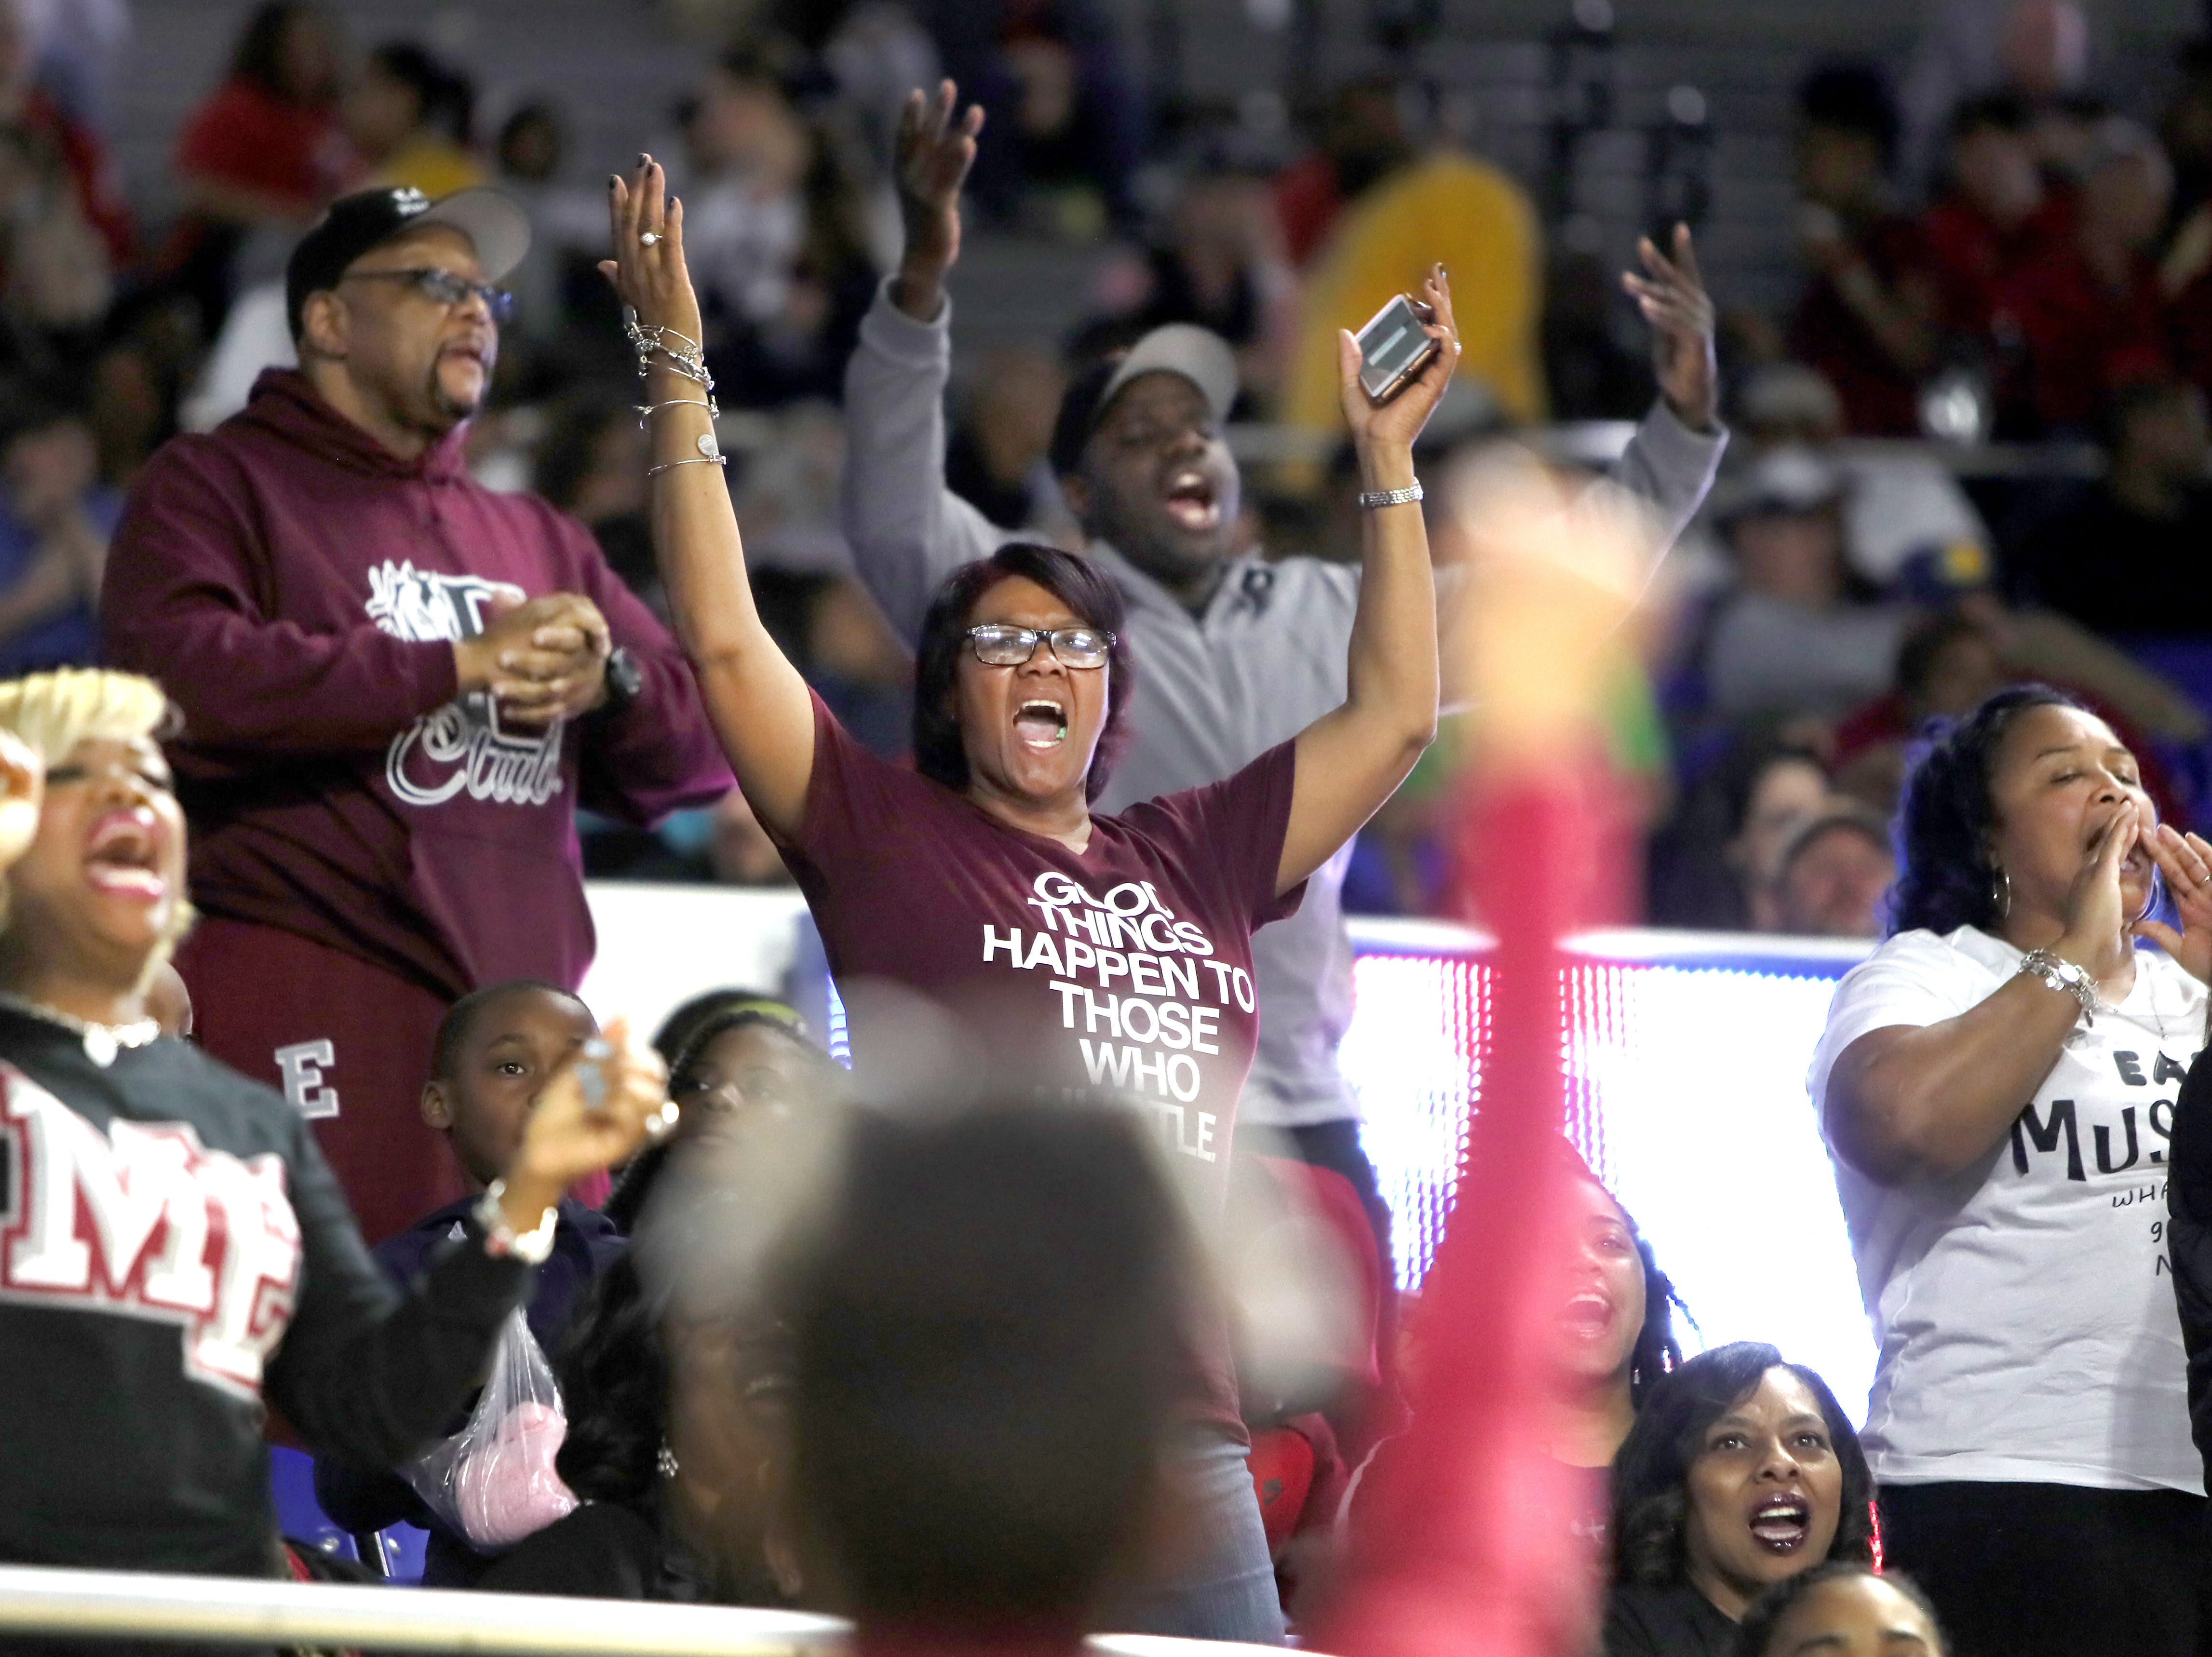 Memphis East fans celebrate as their team defeats Brentwood during the Class AAA boys basketball state semifinal at the Murphy Center in Murfreesboro, Tenn. on Friday, March 15, 2019.